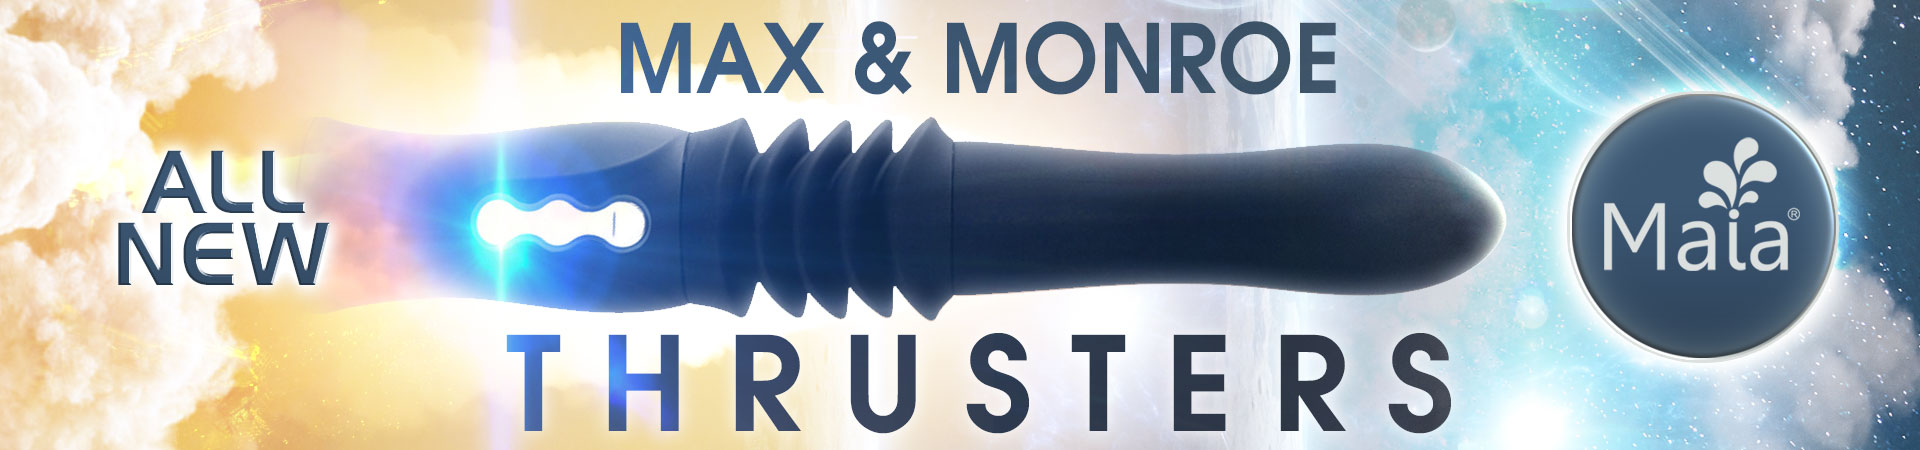 New! Max & Monroe Thrusters From Maia will take your stimulation to the next level as a thrusting vaginal and anal toy. Take advantage of the suction cup base and wireless remote for an effortless night of pleasure.